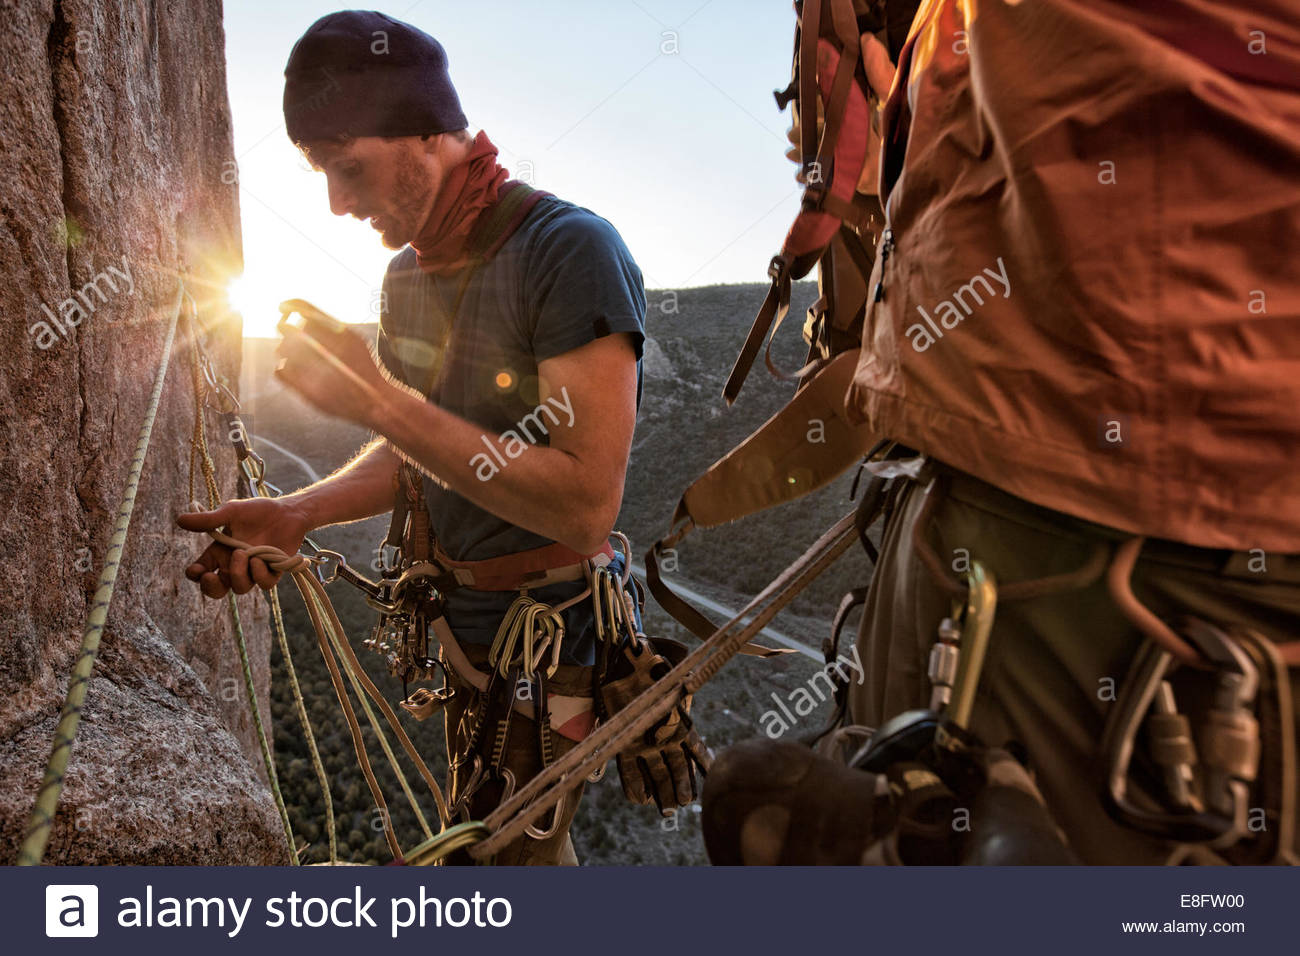 Rock climber inspecting rope, Unaweep Canyon, Colorado, America, USA - Stock Image